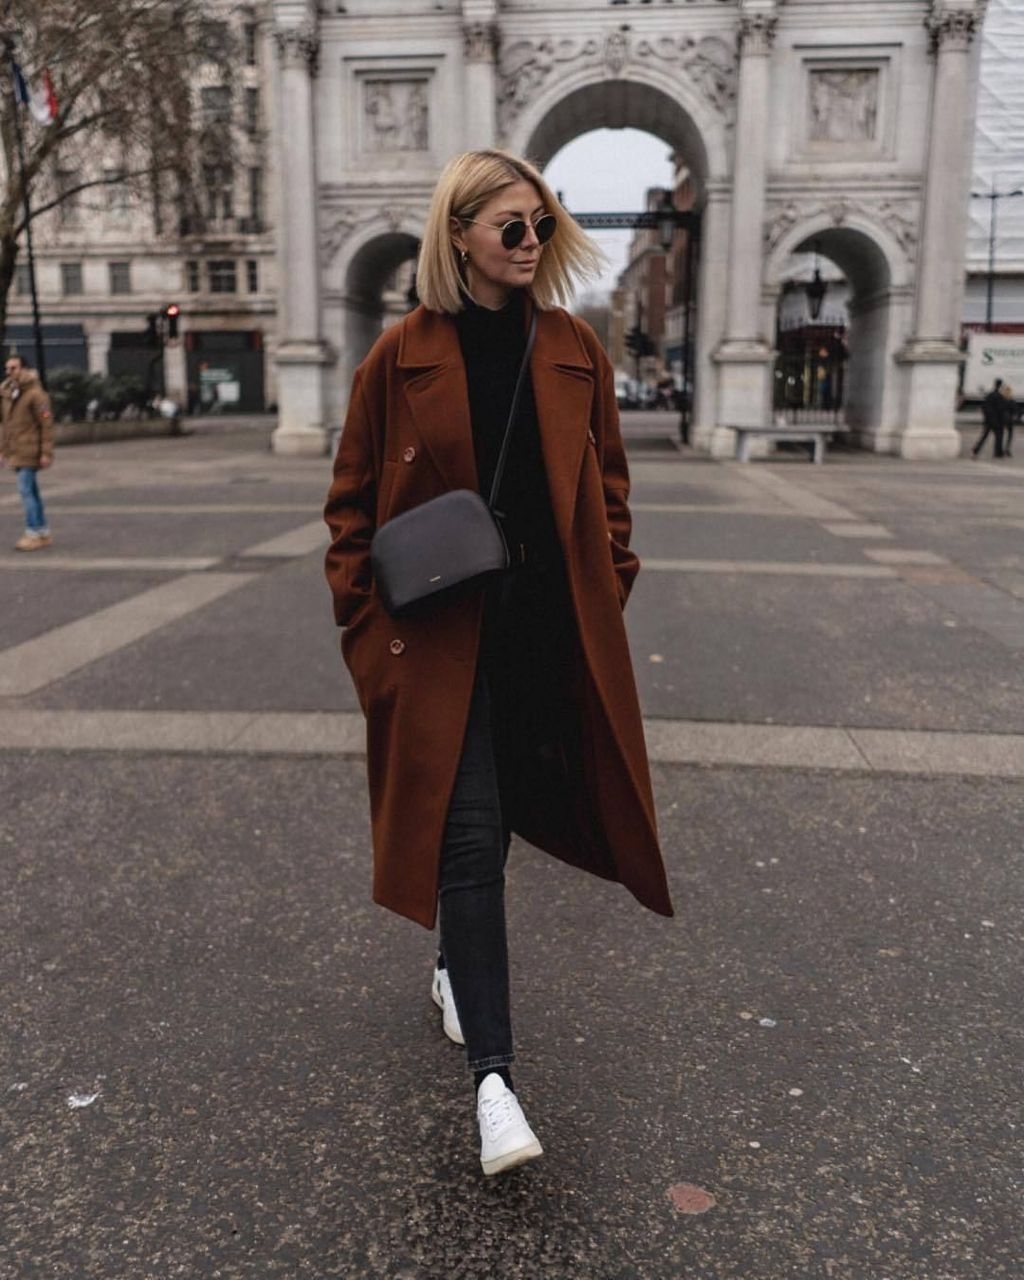 57 Magnificient Winter Outfits Women Ideas To Wear Everyday / 36, #winteroutfitscold #winterweddingguestdresses #plus size outfits australia 57 Magnificient Winter Outfits Women Ideas To Wear Everyday / 36 #winteroutfitscold